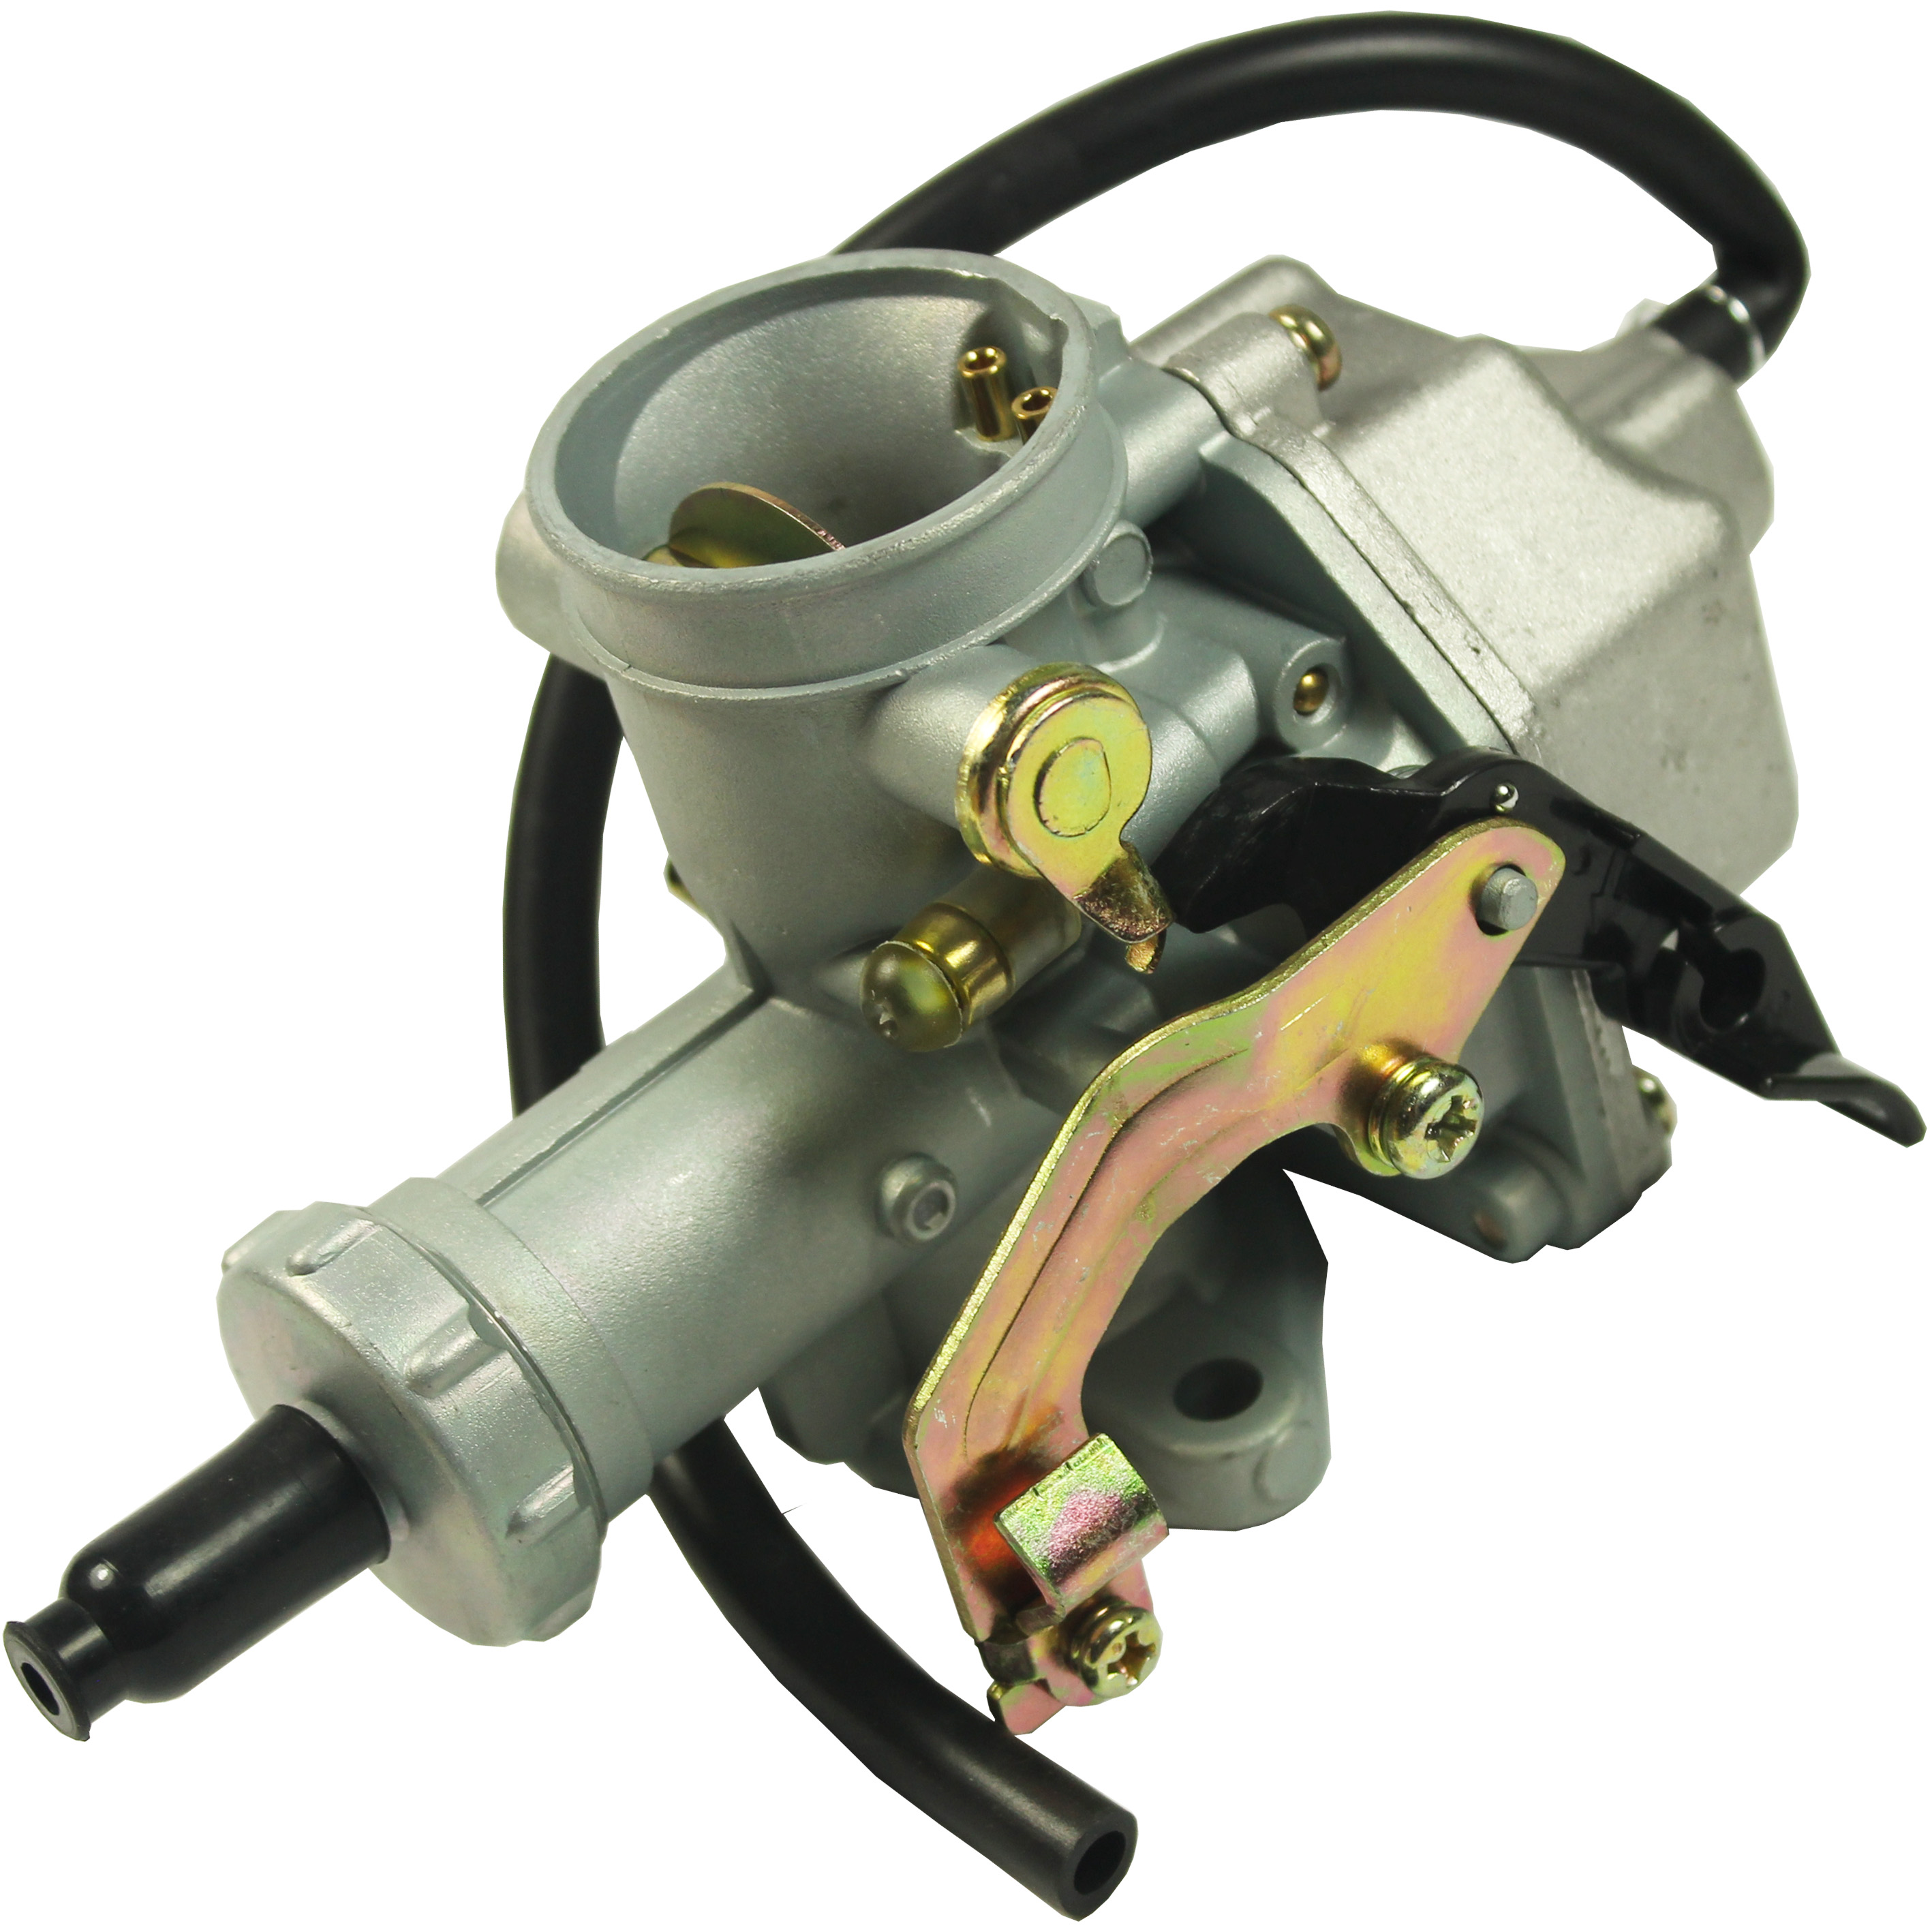 Details about New Carburetor PZ 27mm For 125 150 200 250 300cc ATV Go Karts  Carb Chinese Sunl